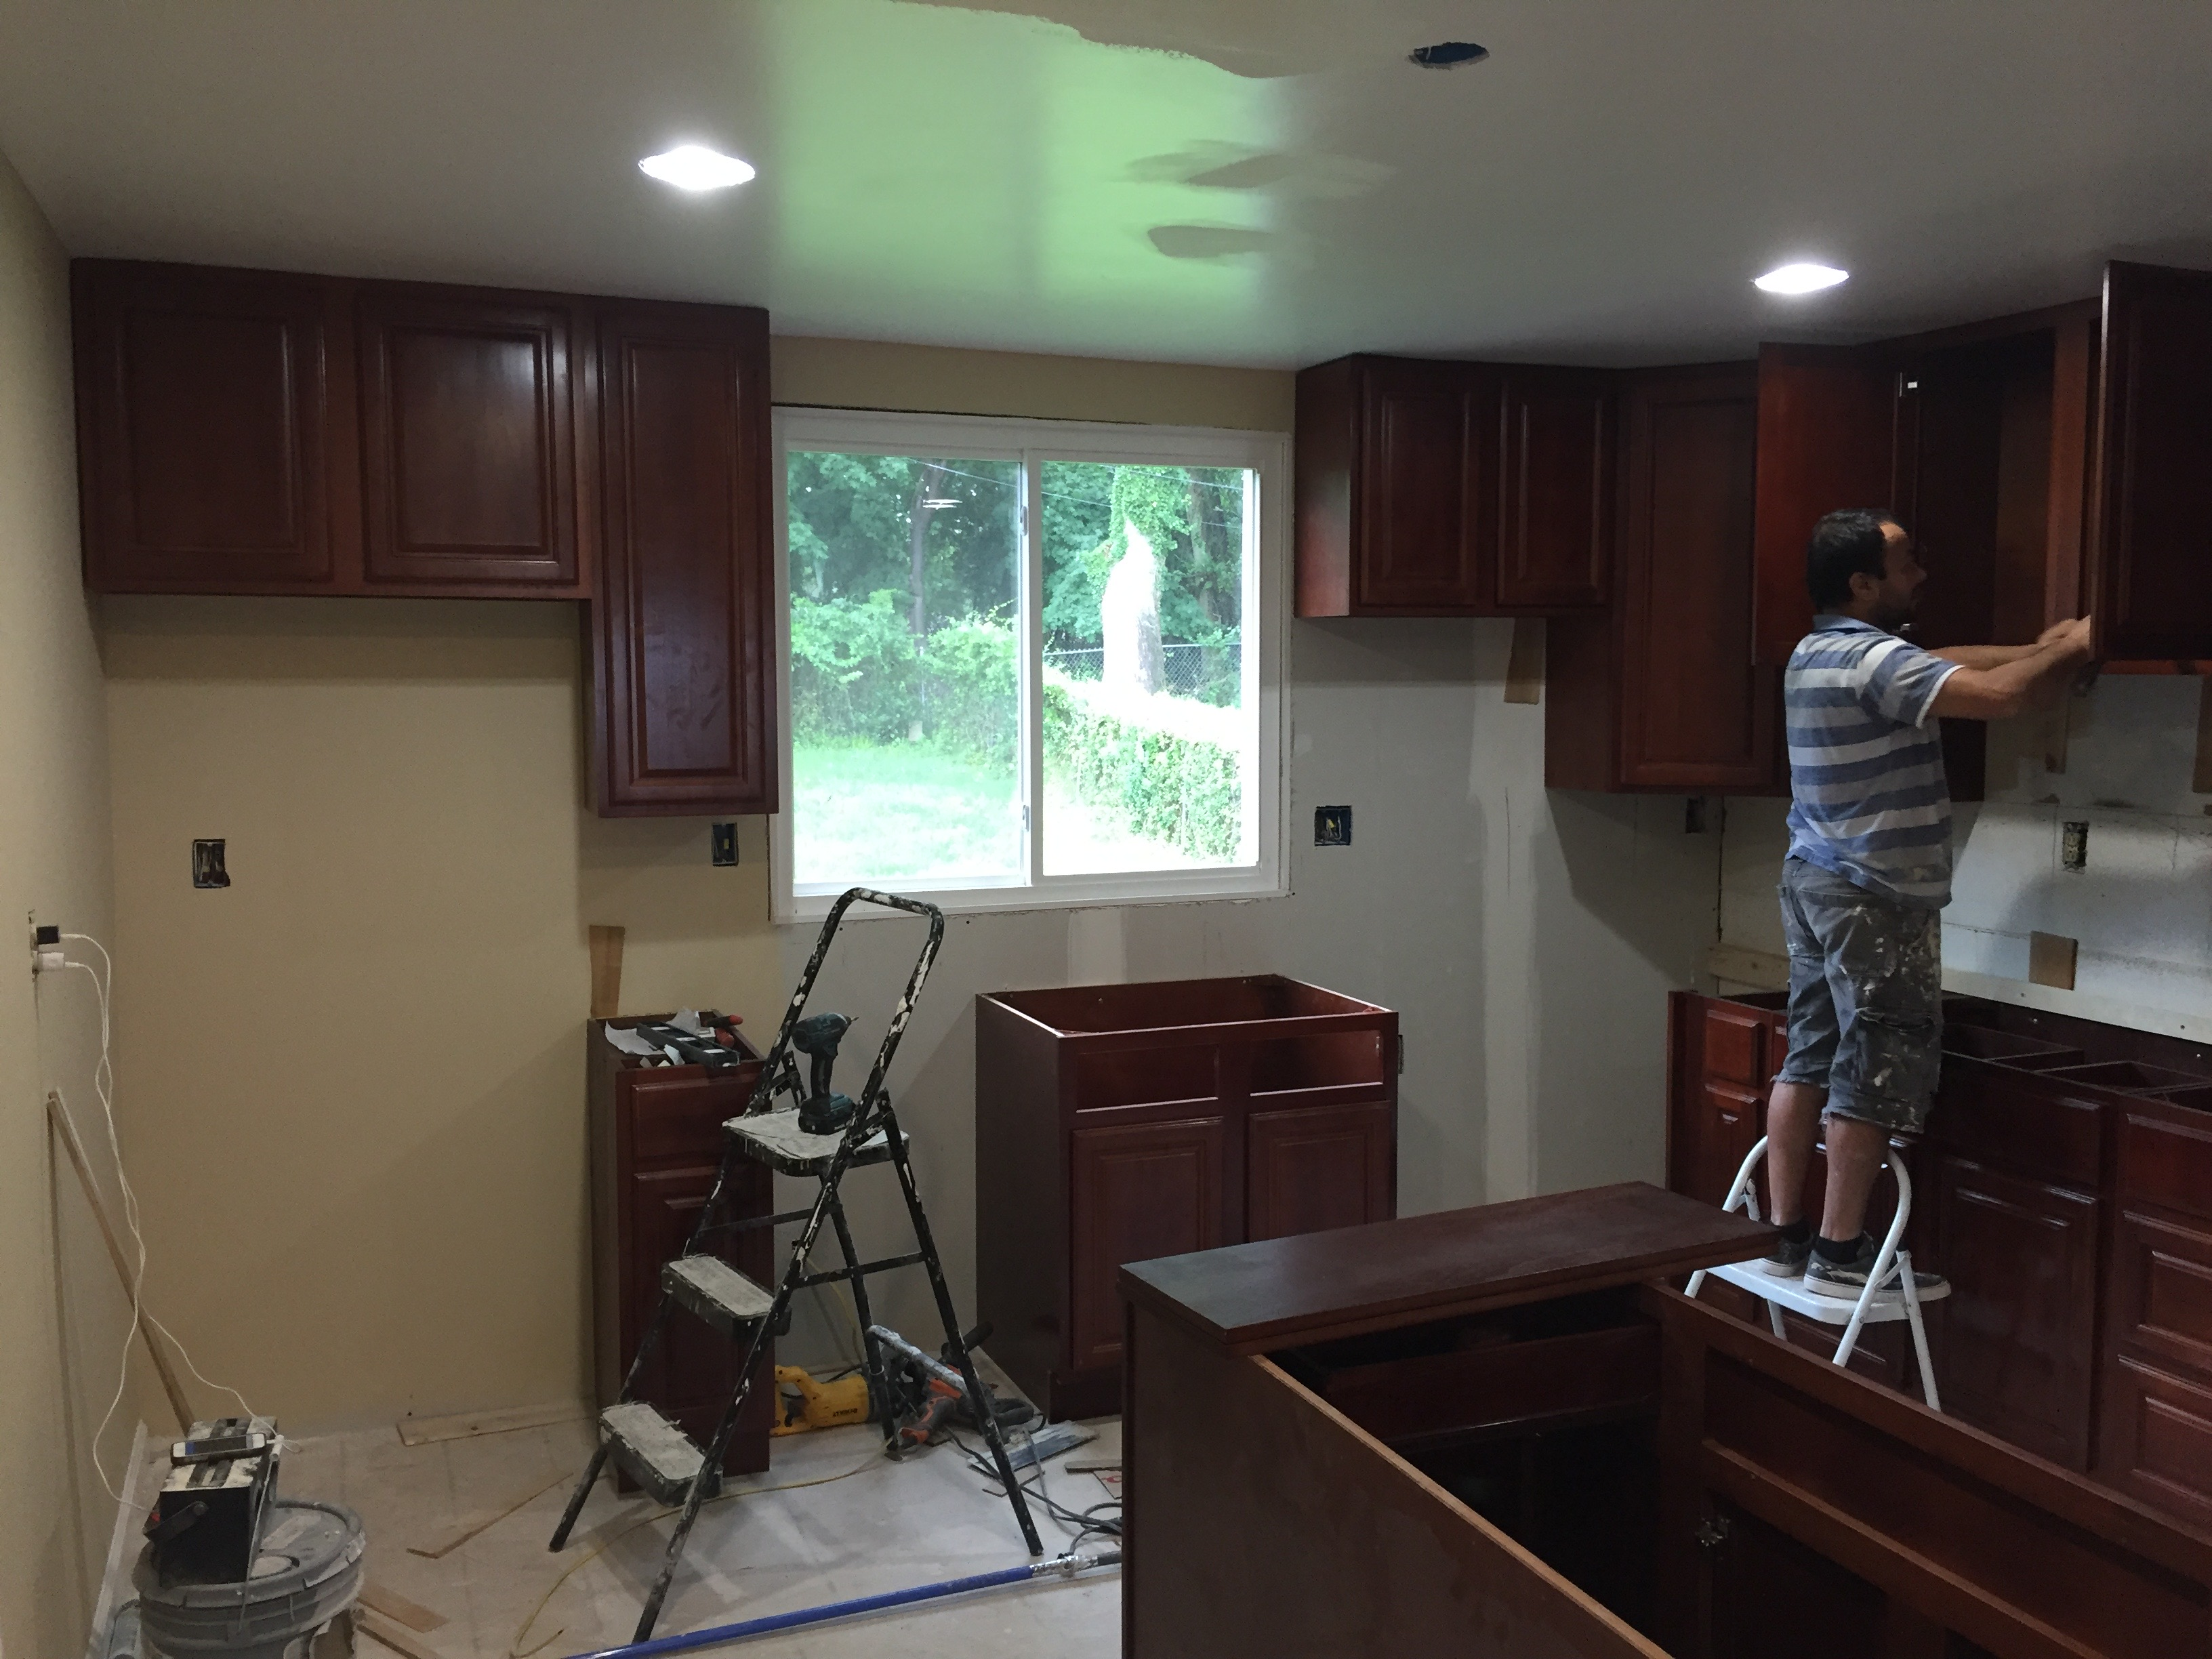 Process of remodeling the kitchen